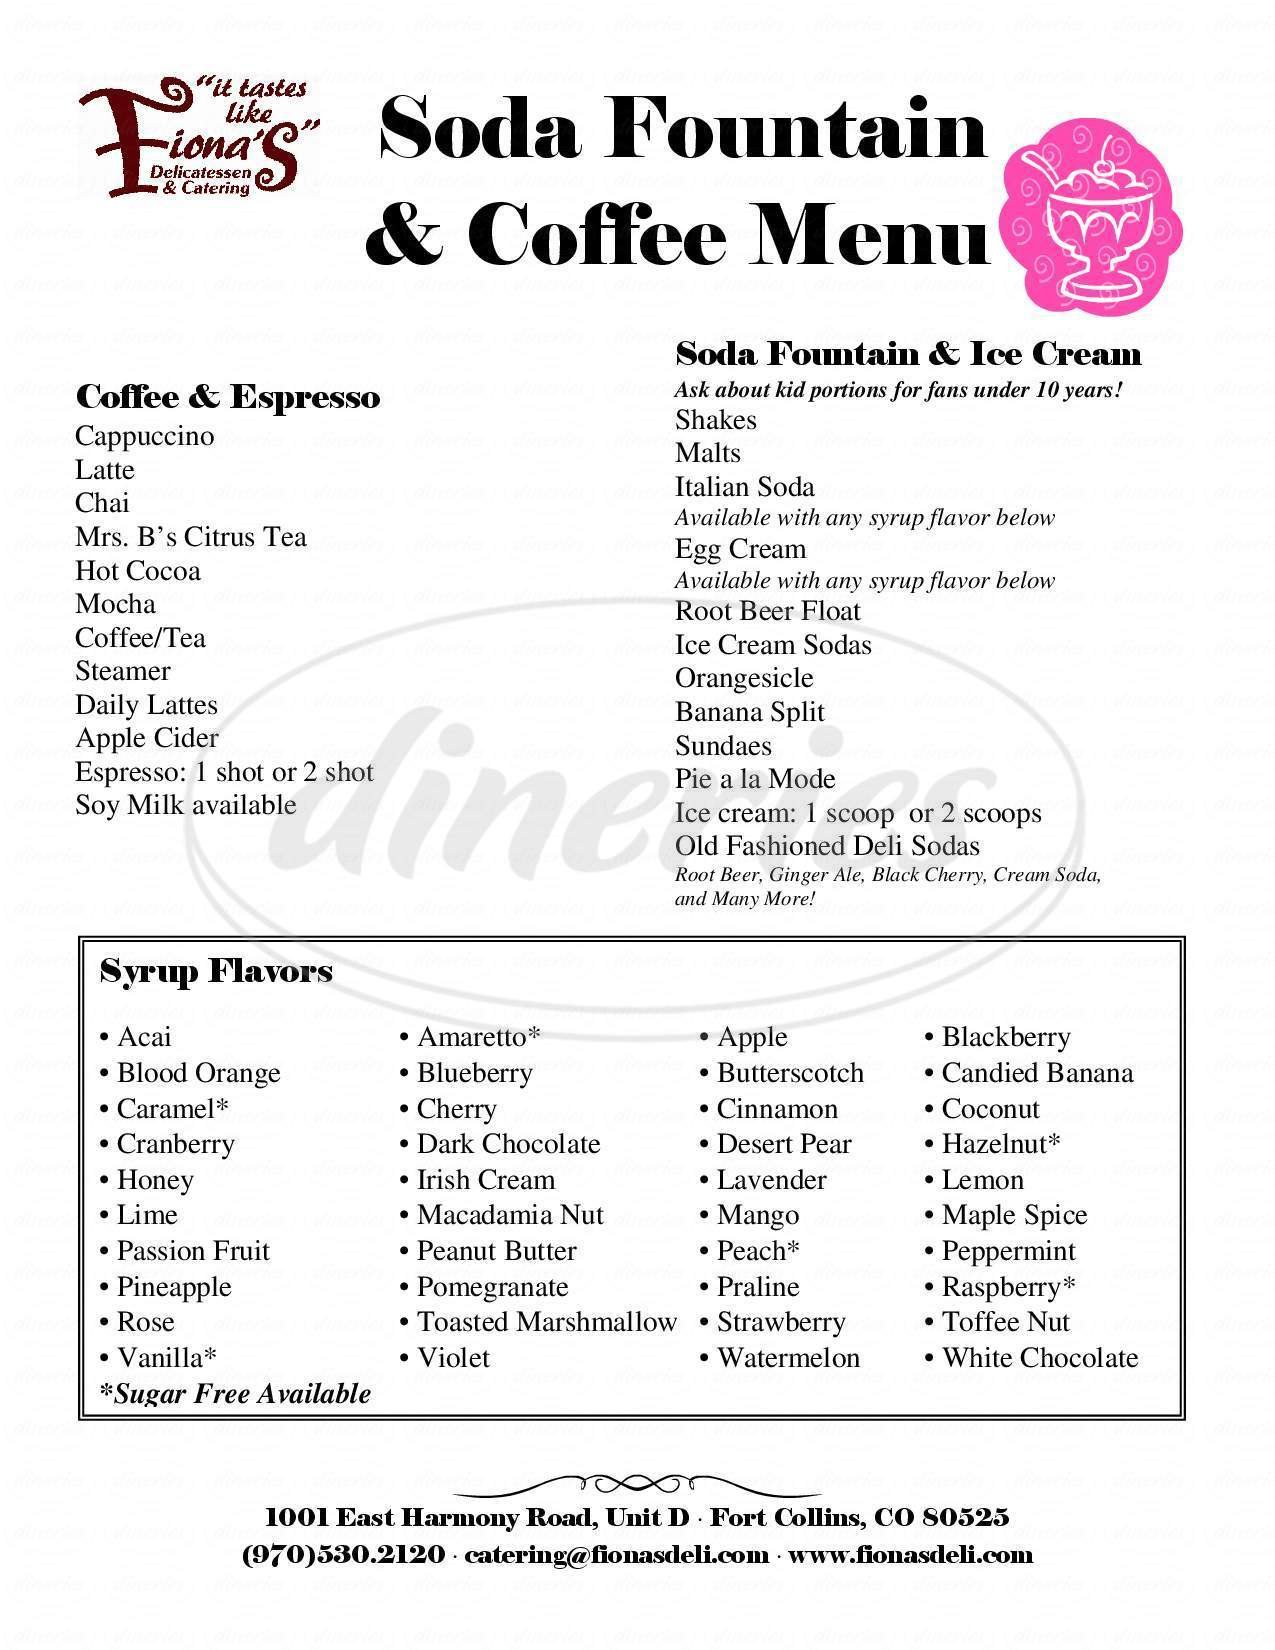 menu for Fiona's Delicatessen & Catering